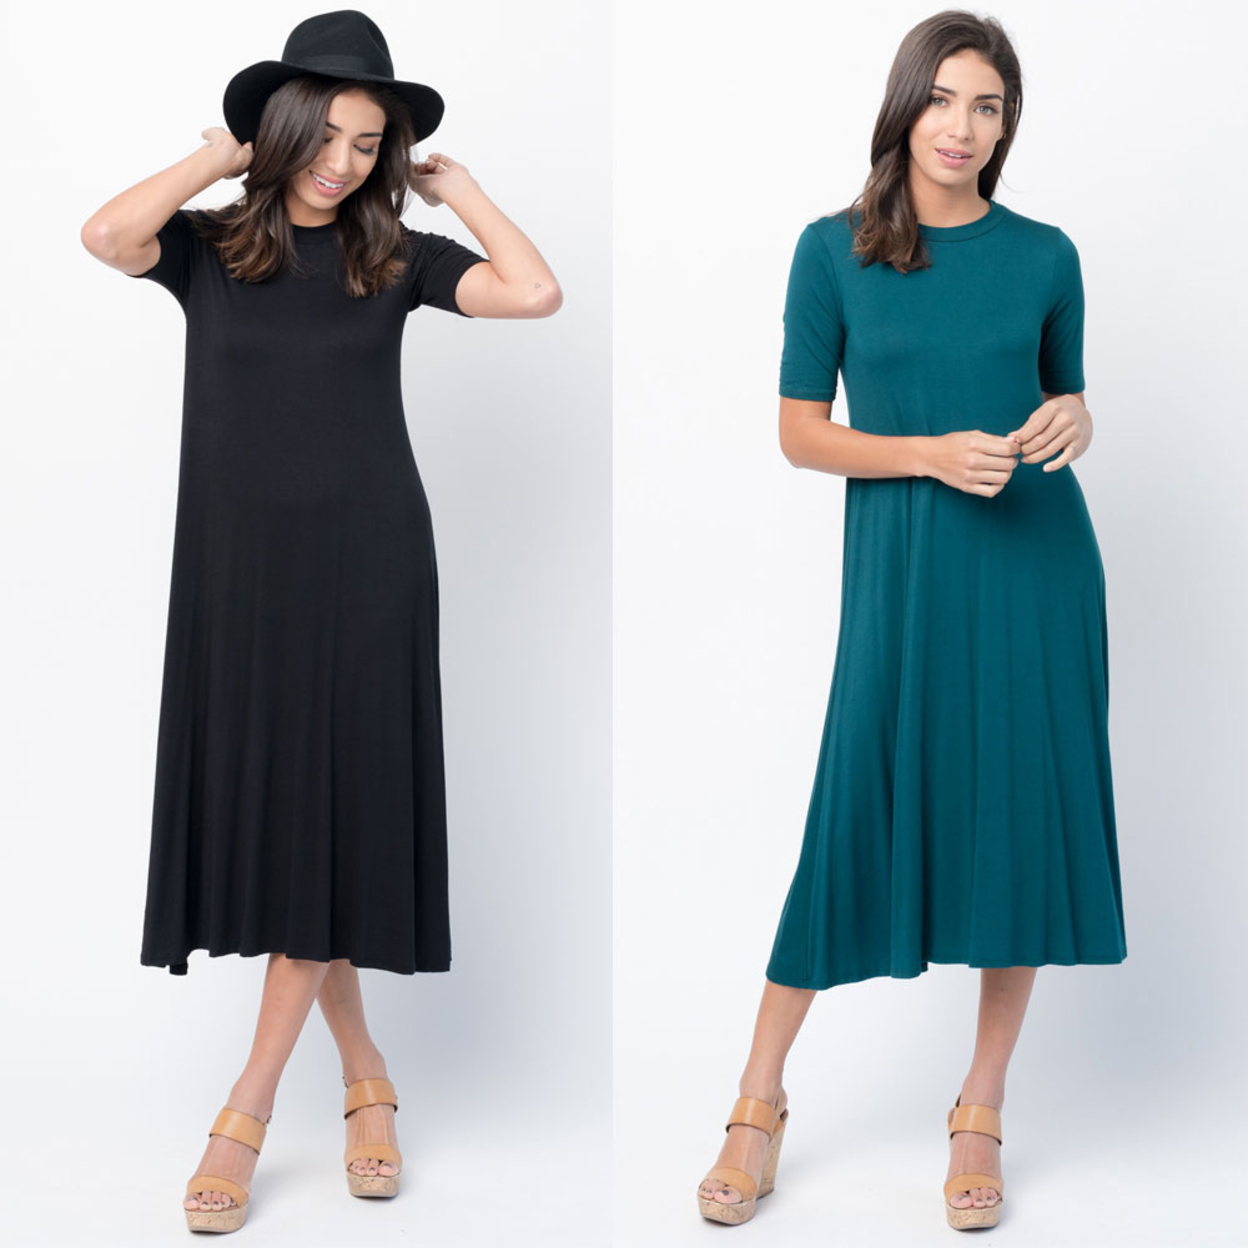 Caralase Solid Jersey Swing Midi NC- 18 Colors Available - Heather Grey, Small 57ab9eed2c043d4e6205b9b8